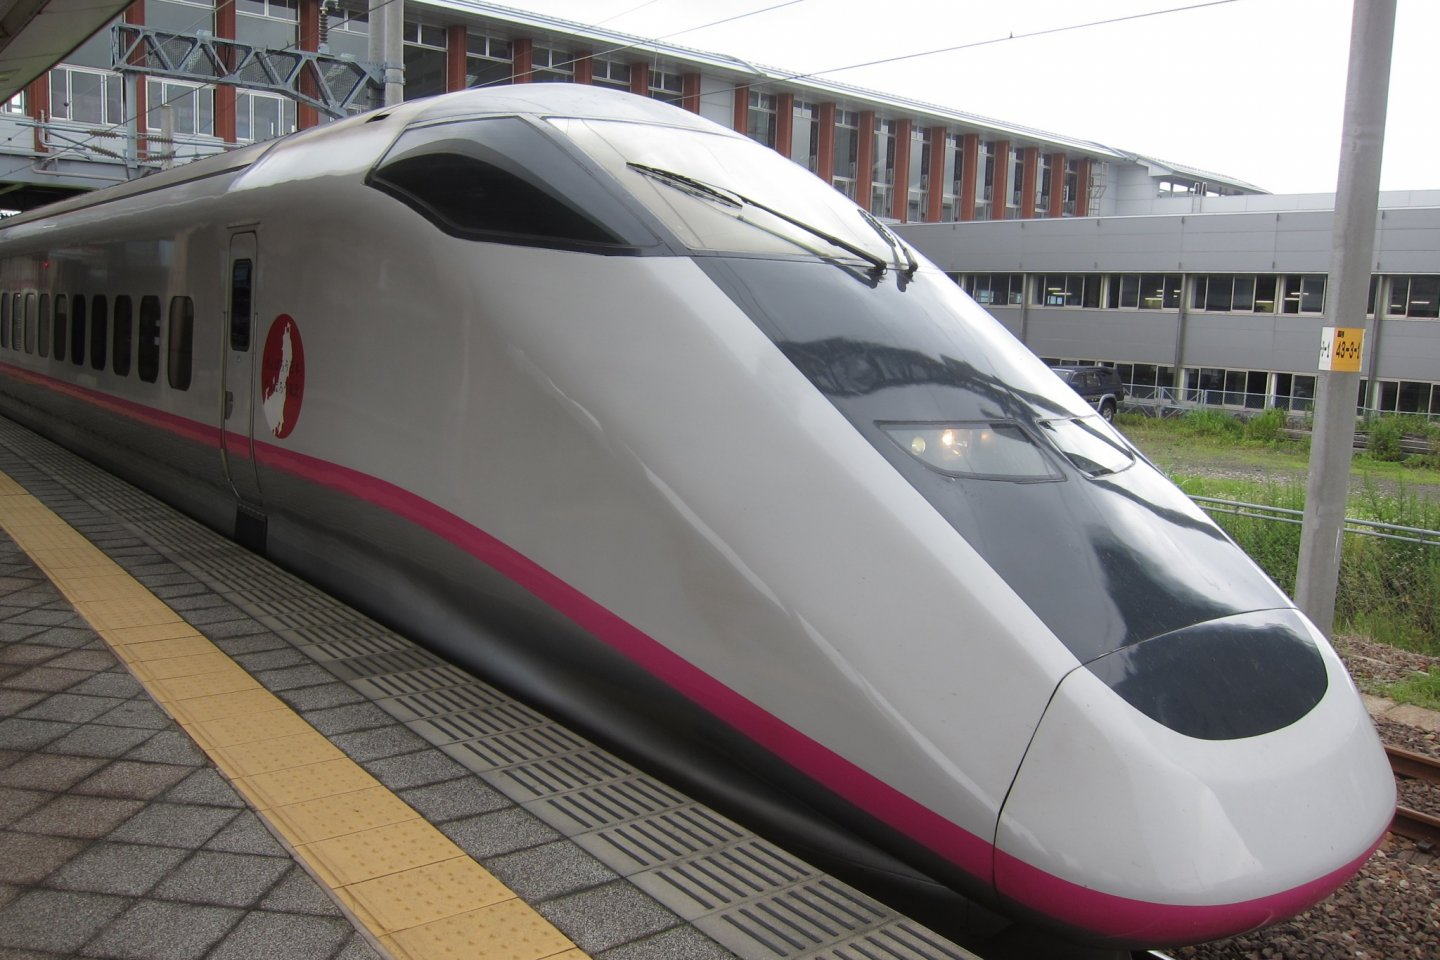 The JR East Pass is valid for all Shinkansen Trains in Tohoku and Nagano areas to and from Tokyo.